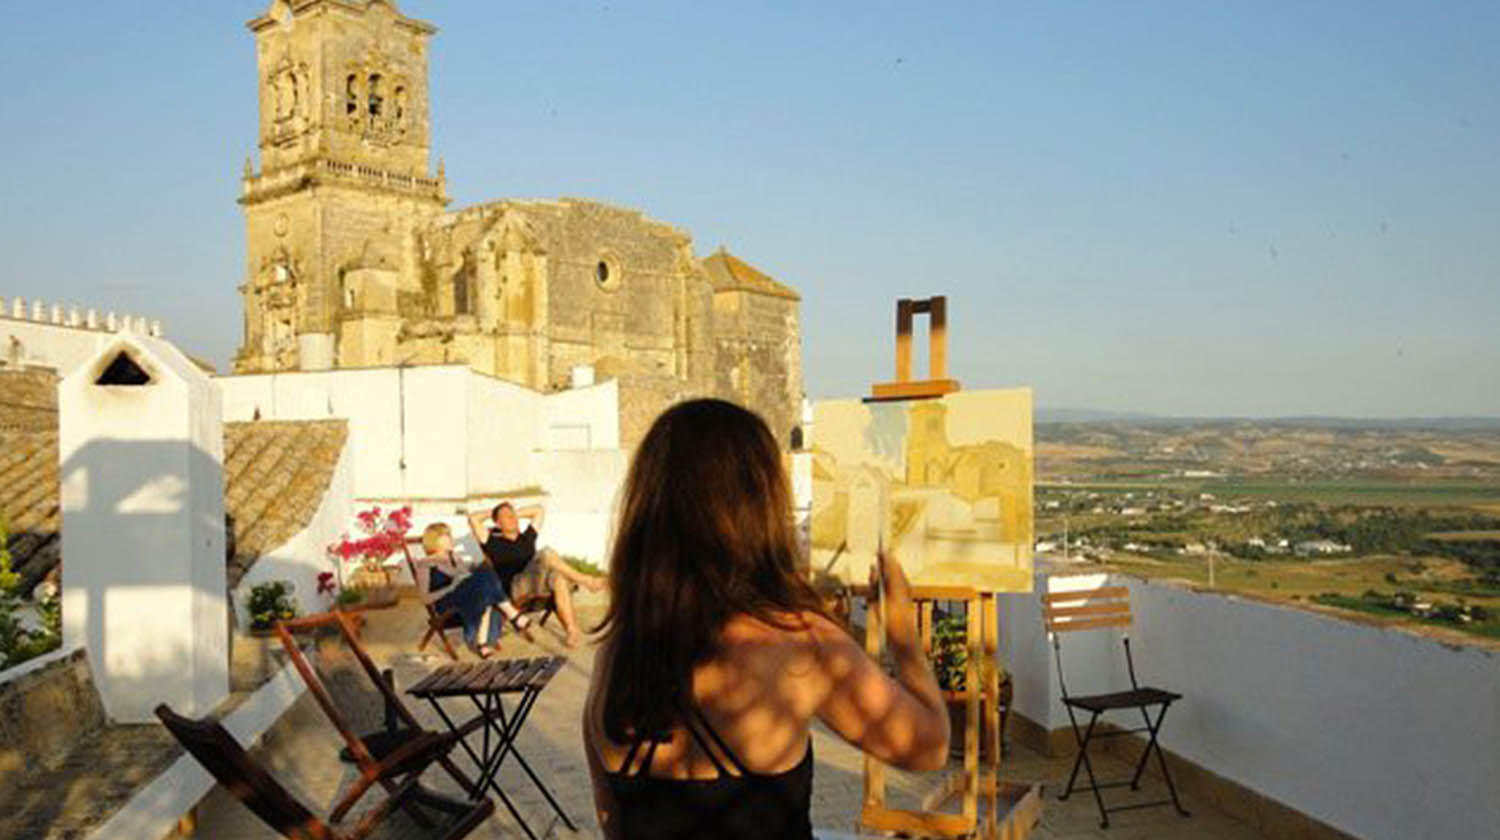 Alex Painting in Arcos